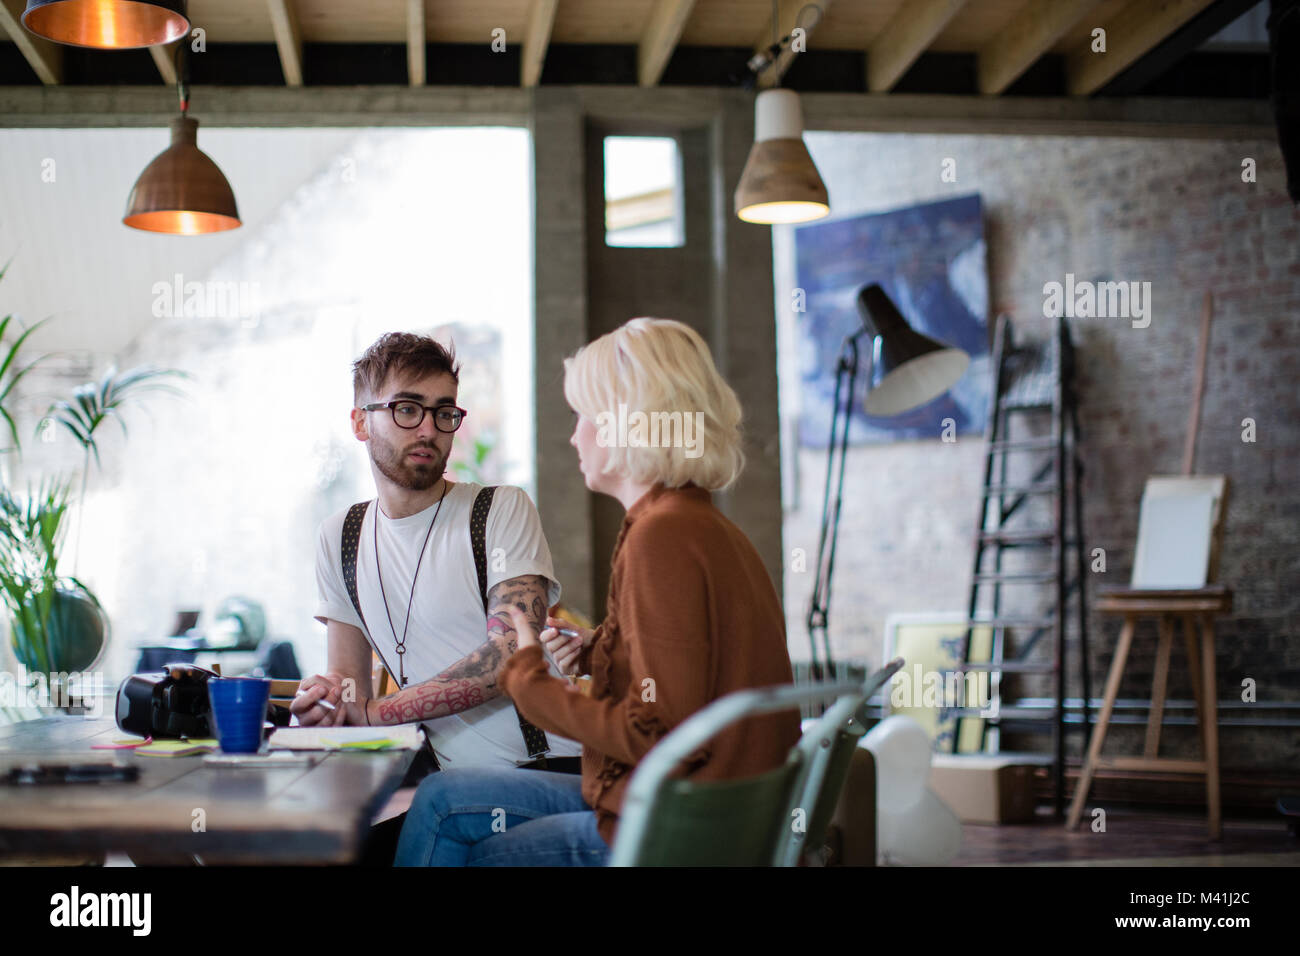 Two entrepreneurs in a business meeting - Stock Image